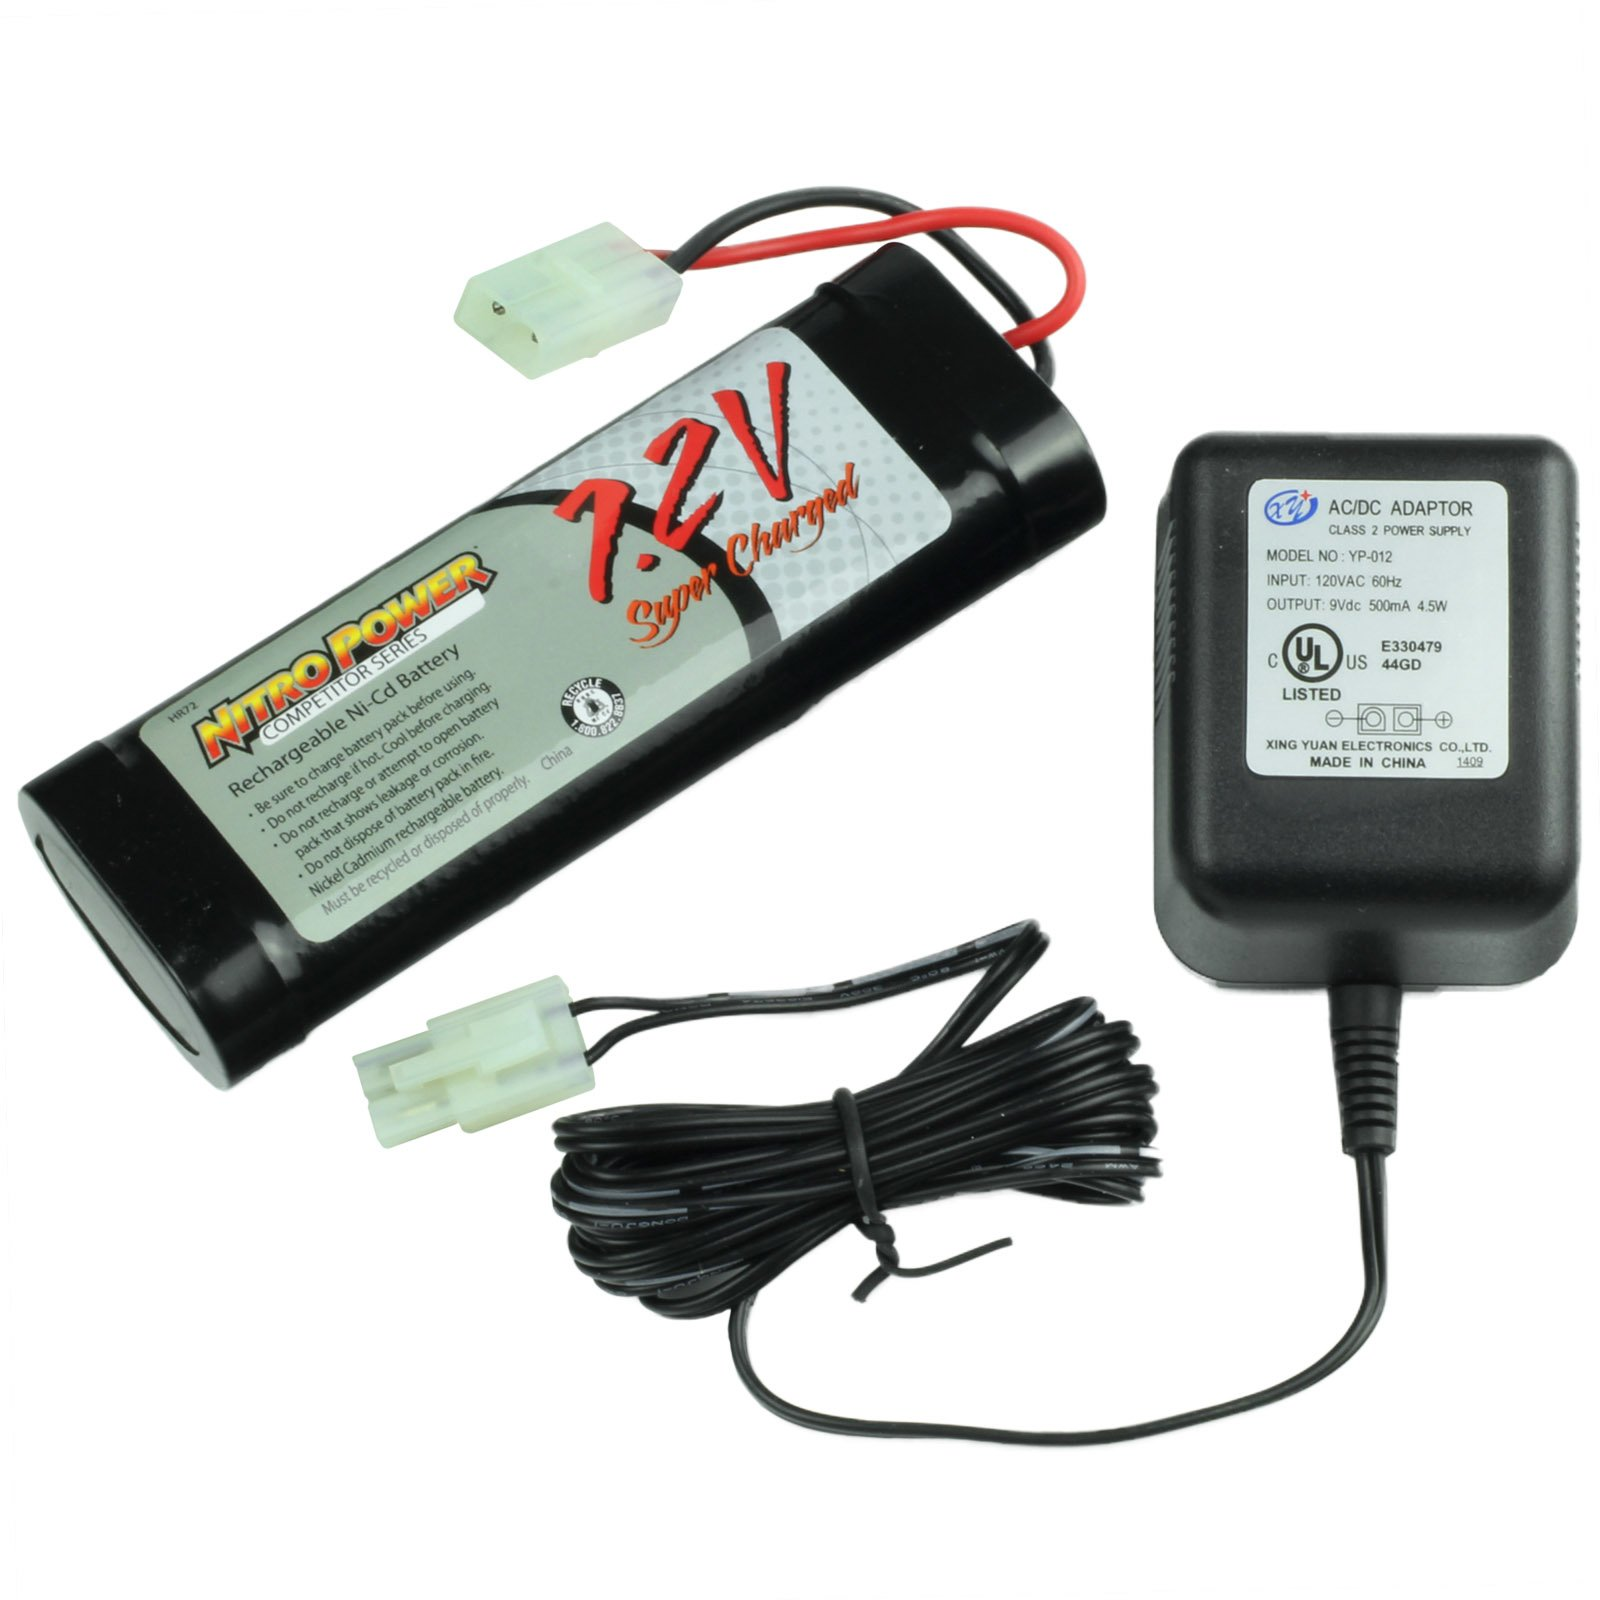 Replacement 7 2V Battery & Charger Kit for RC Cars